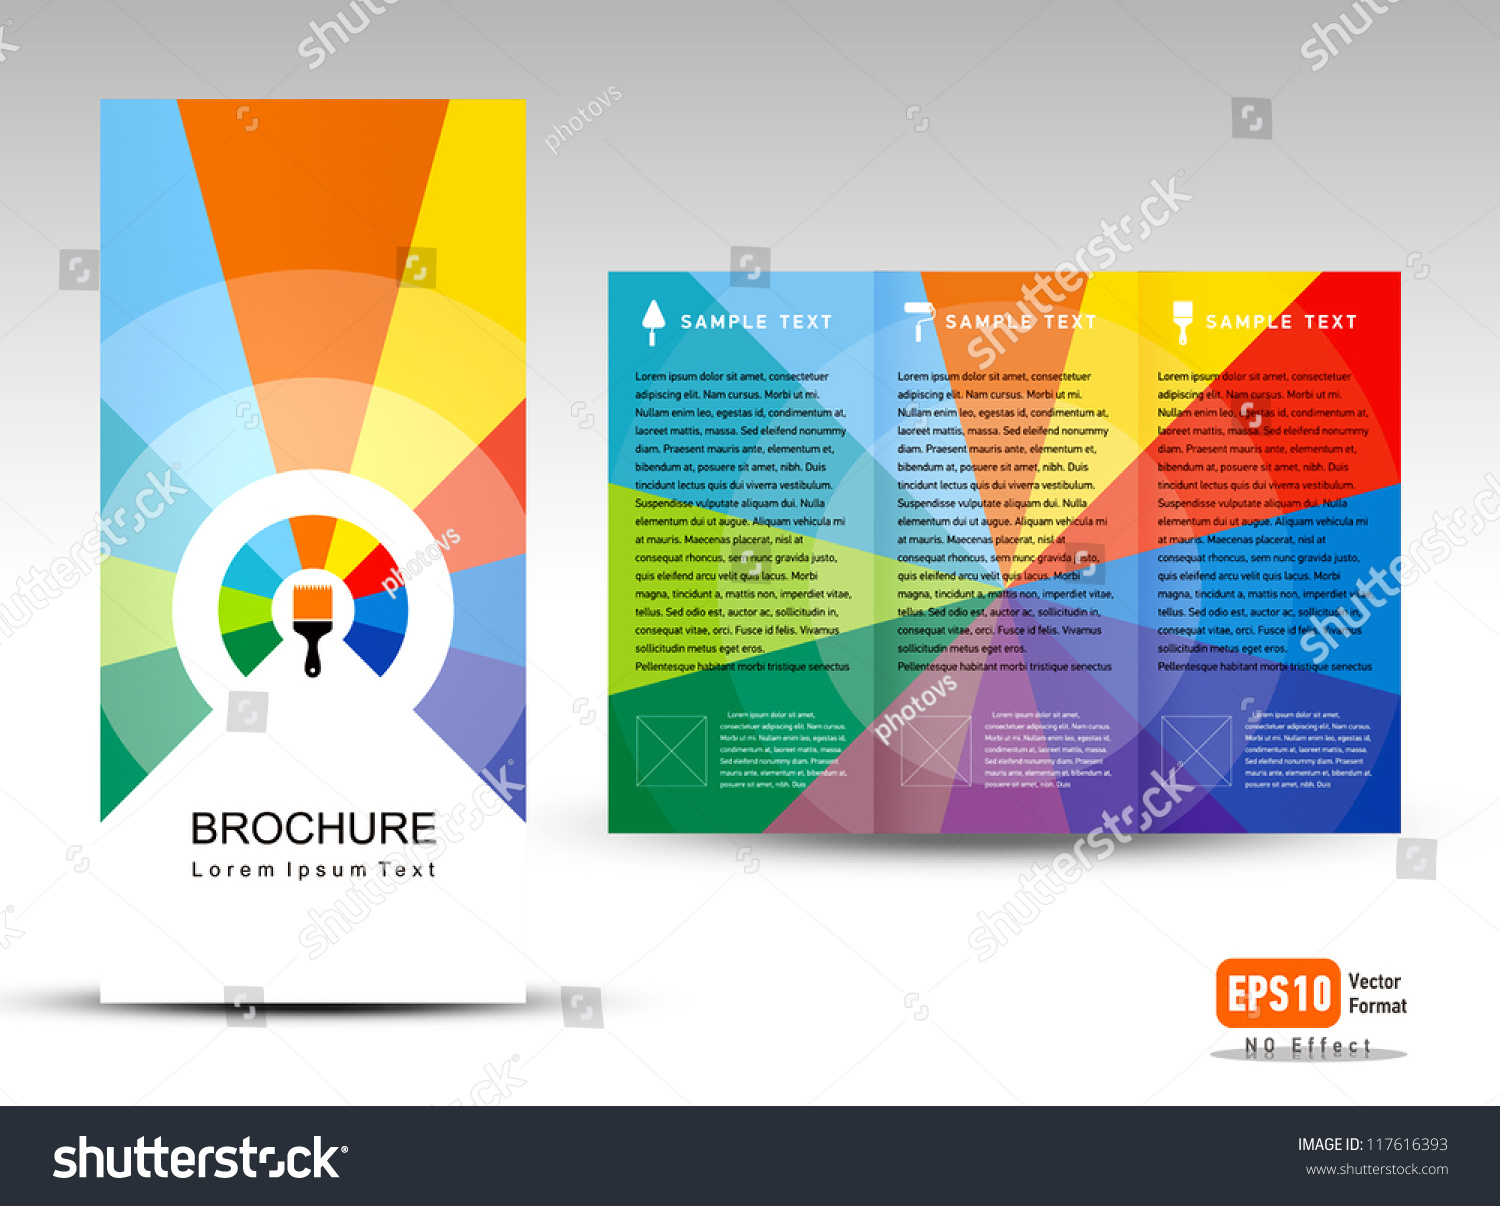 Creative design vector brochure trifold layout stock for Creative brochure template